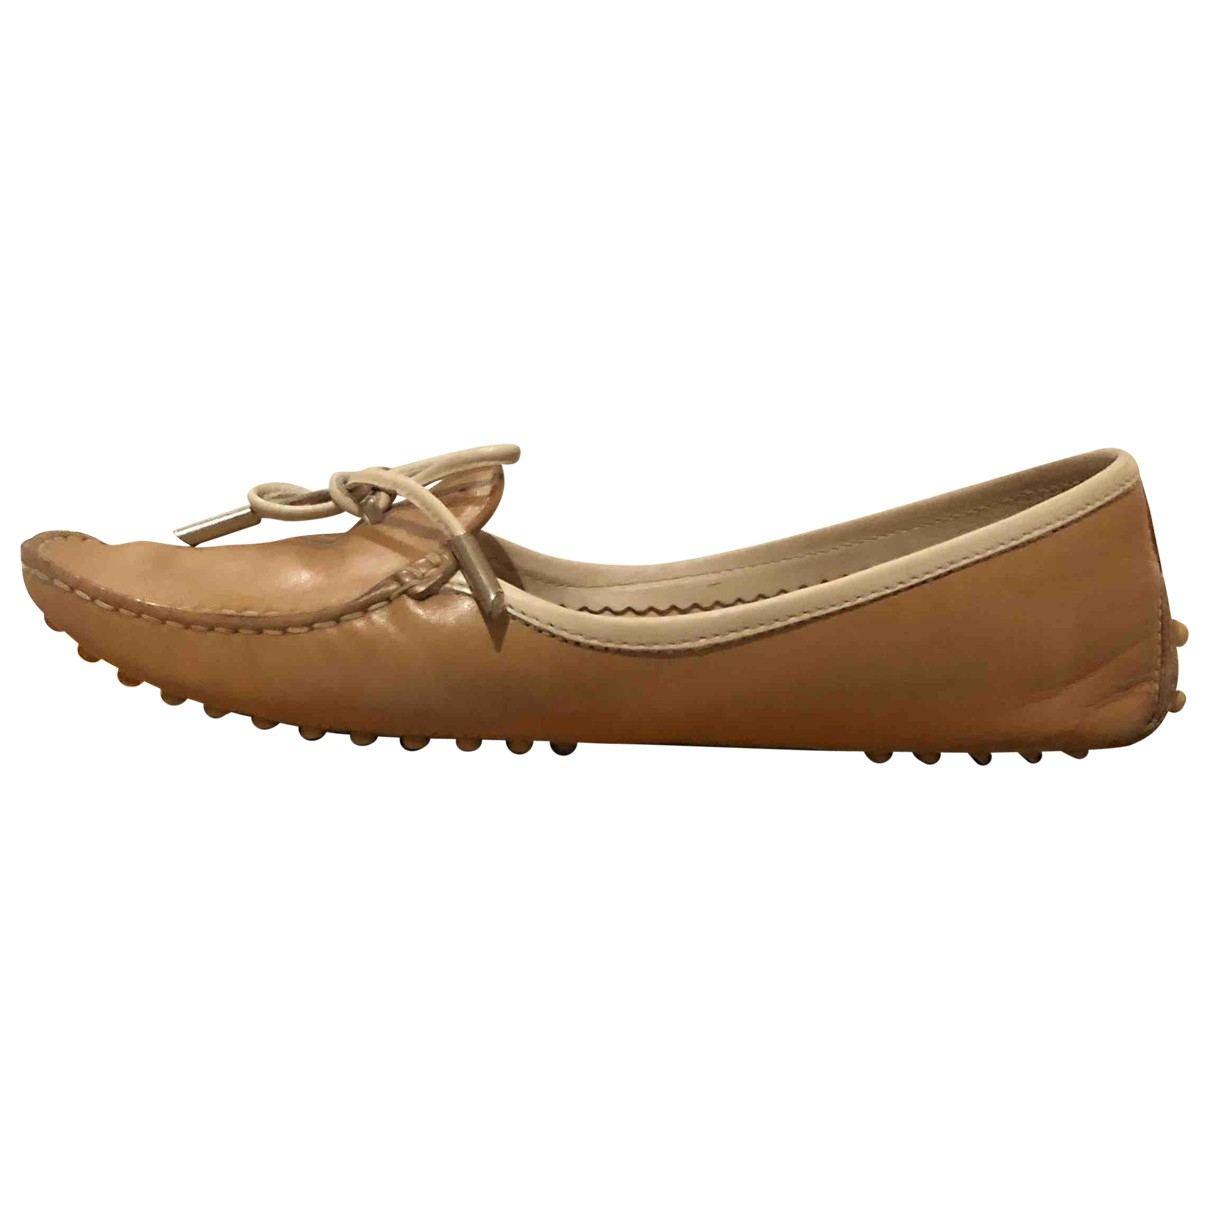 Tod's Gommino Beige Leather Flats for Women 37 EU